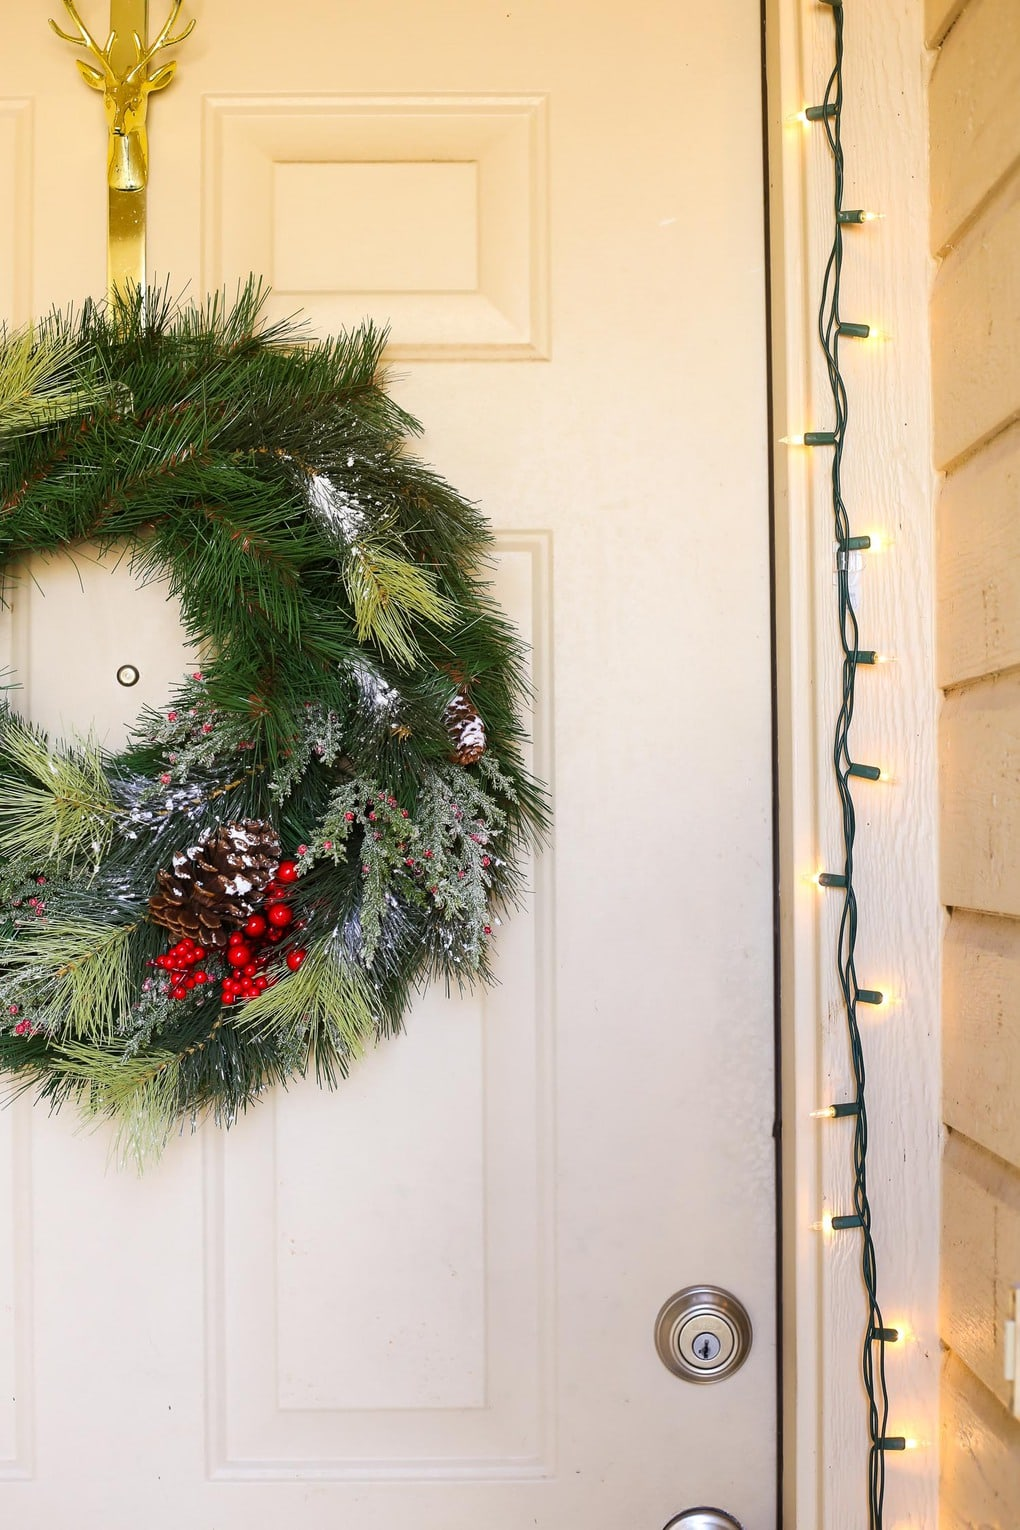 How to make a Easy and beautiful DIY Christmas wreath for your front door